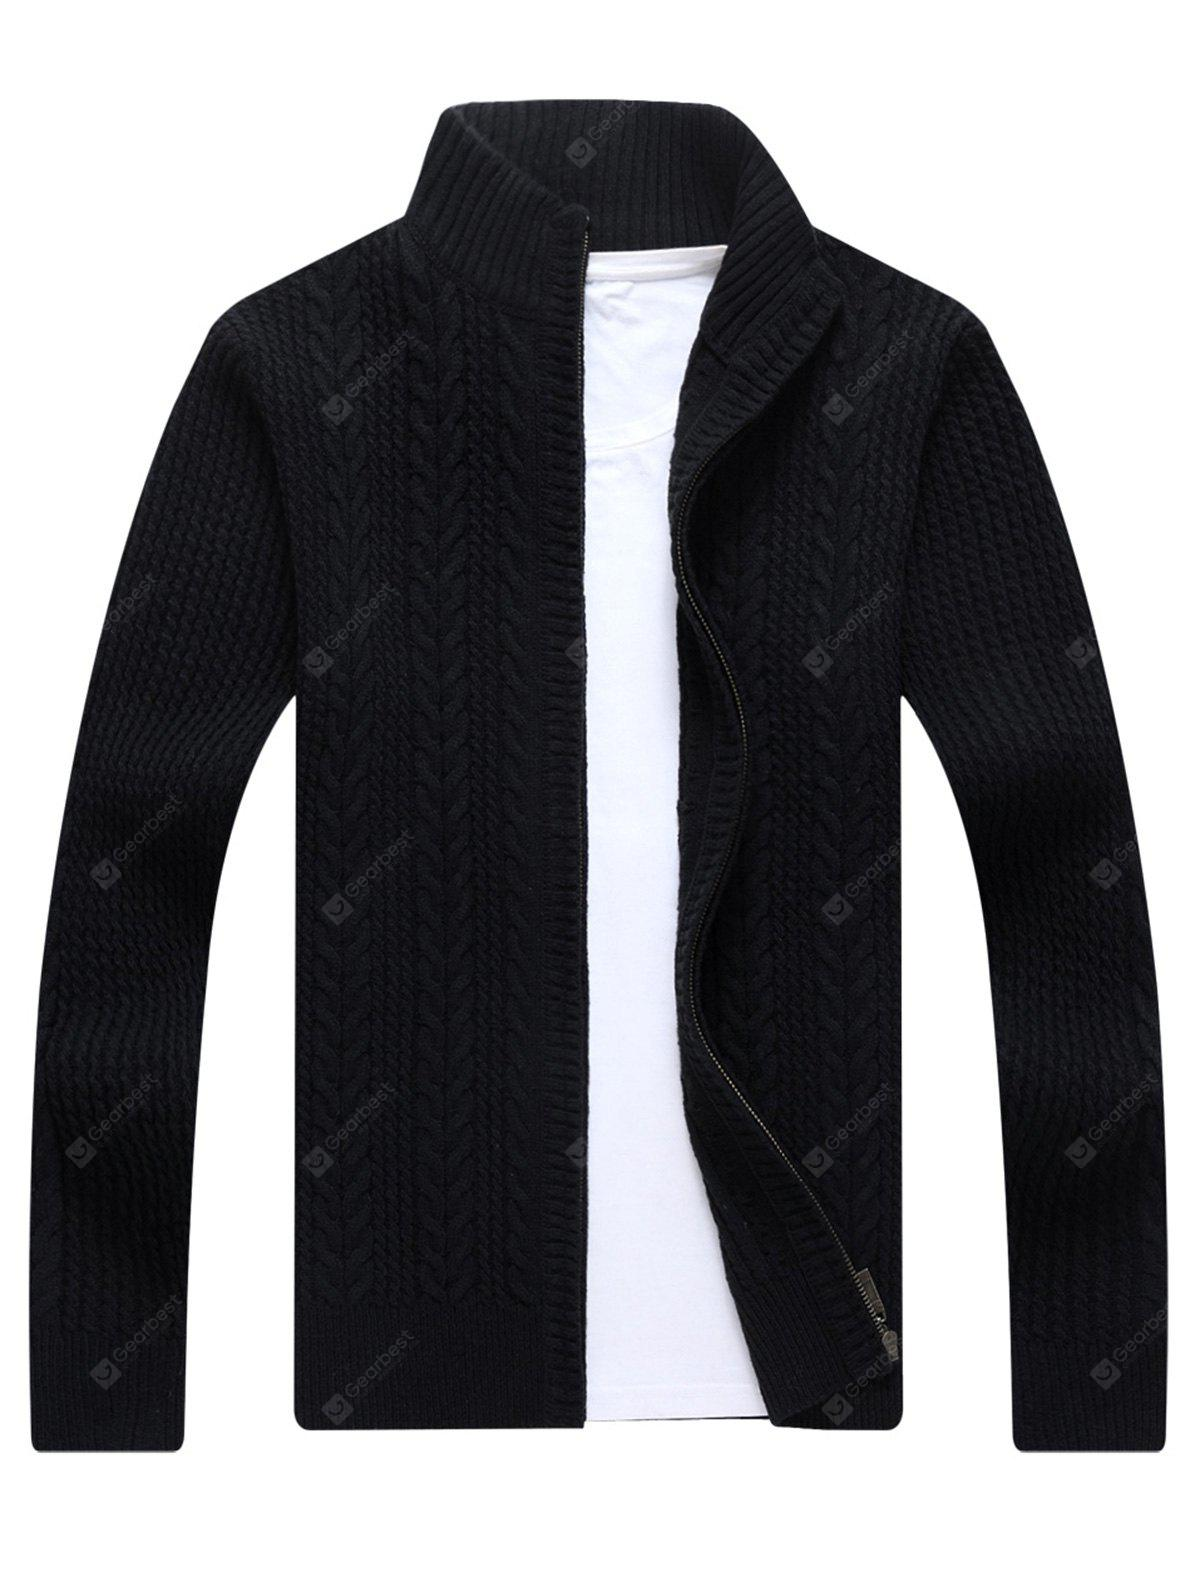 BLACK Zip Stand Collar Cable Knit Cardigan